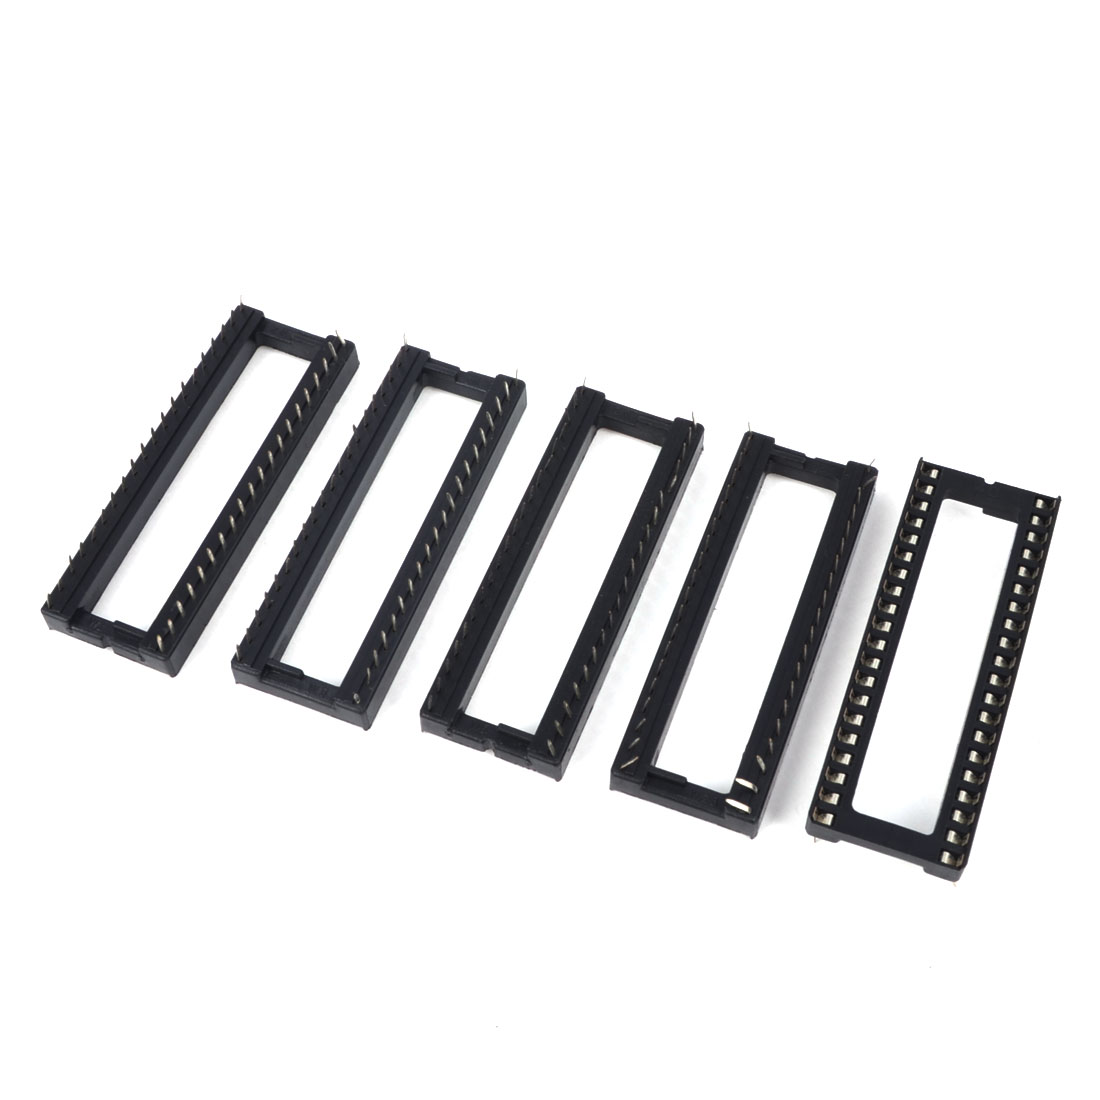 2.54mm Pitch Through Hole 40 Pins DIP IC Socket PCB Board Adapter 5 Pcs